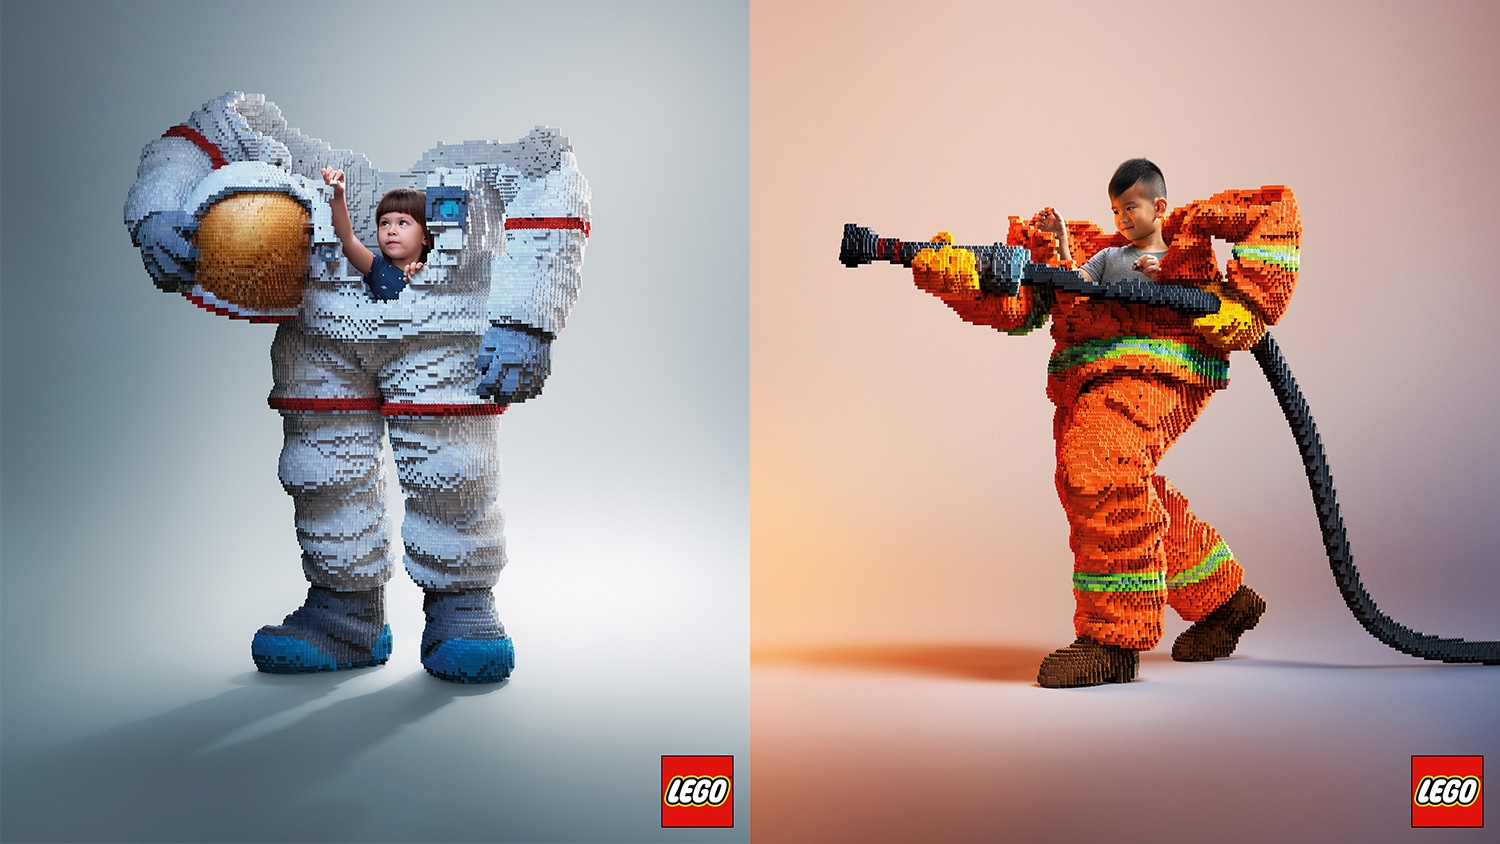 These brilliant Lego posters show just what children's imaginations are capable of